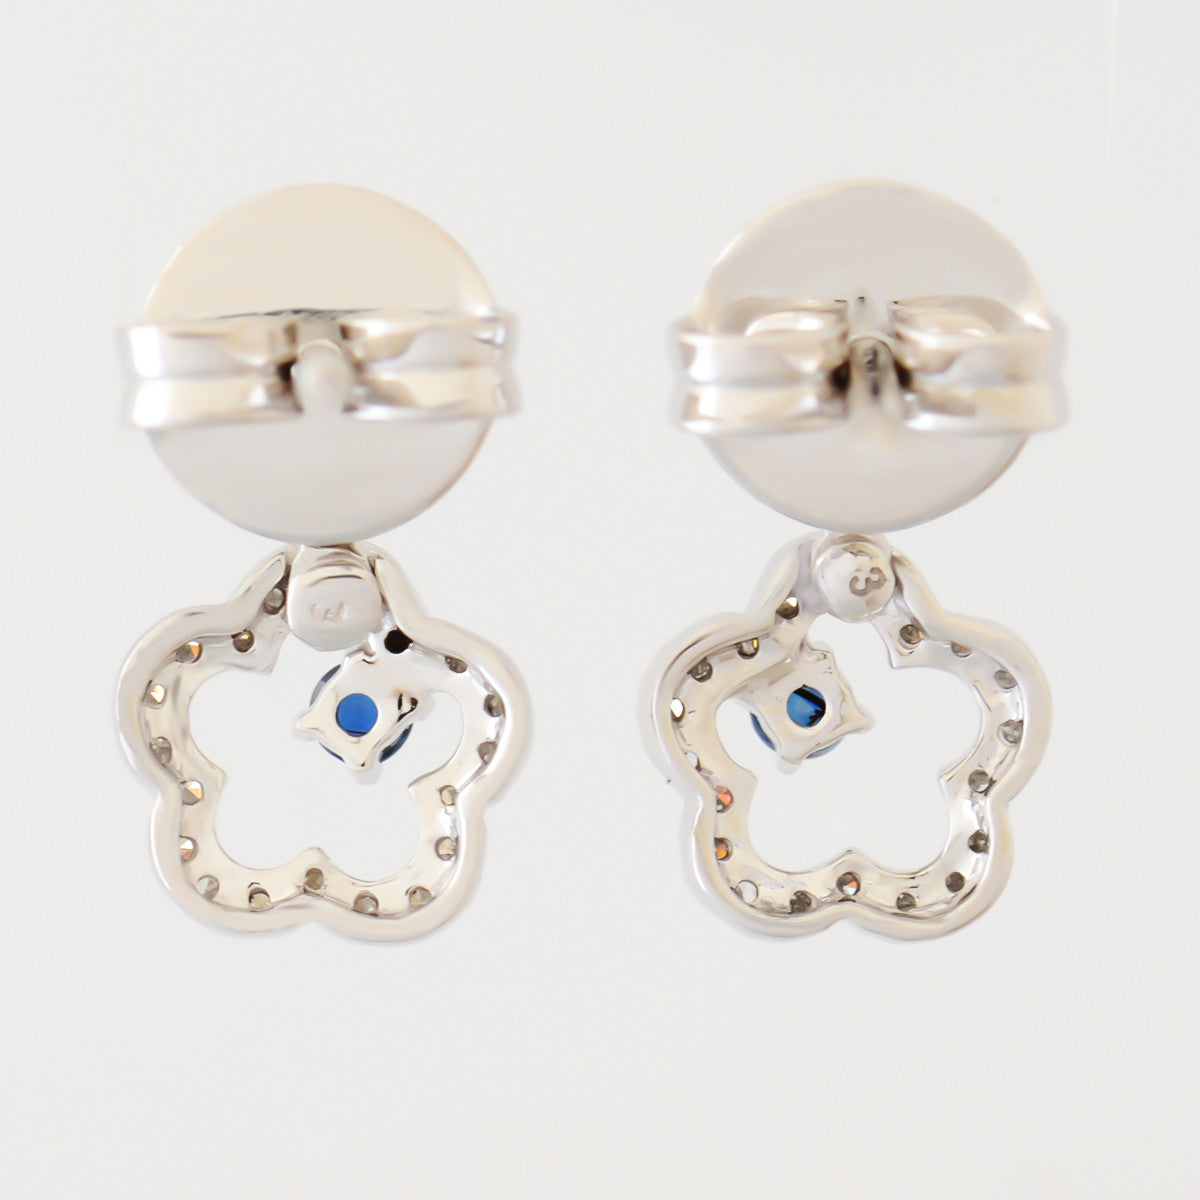 9K SOLID WHITE GOLD FLORAL INSPIRED NATURAL SAPPHIRE EARRINGS WITH 40 DIAMONDS.